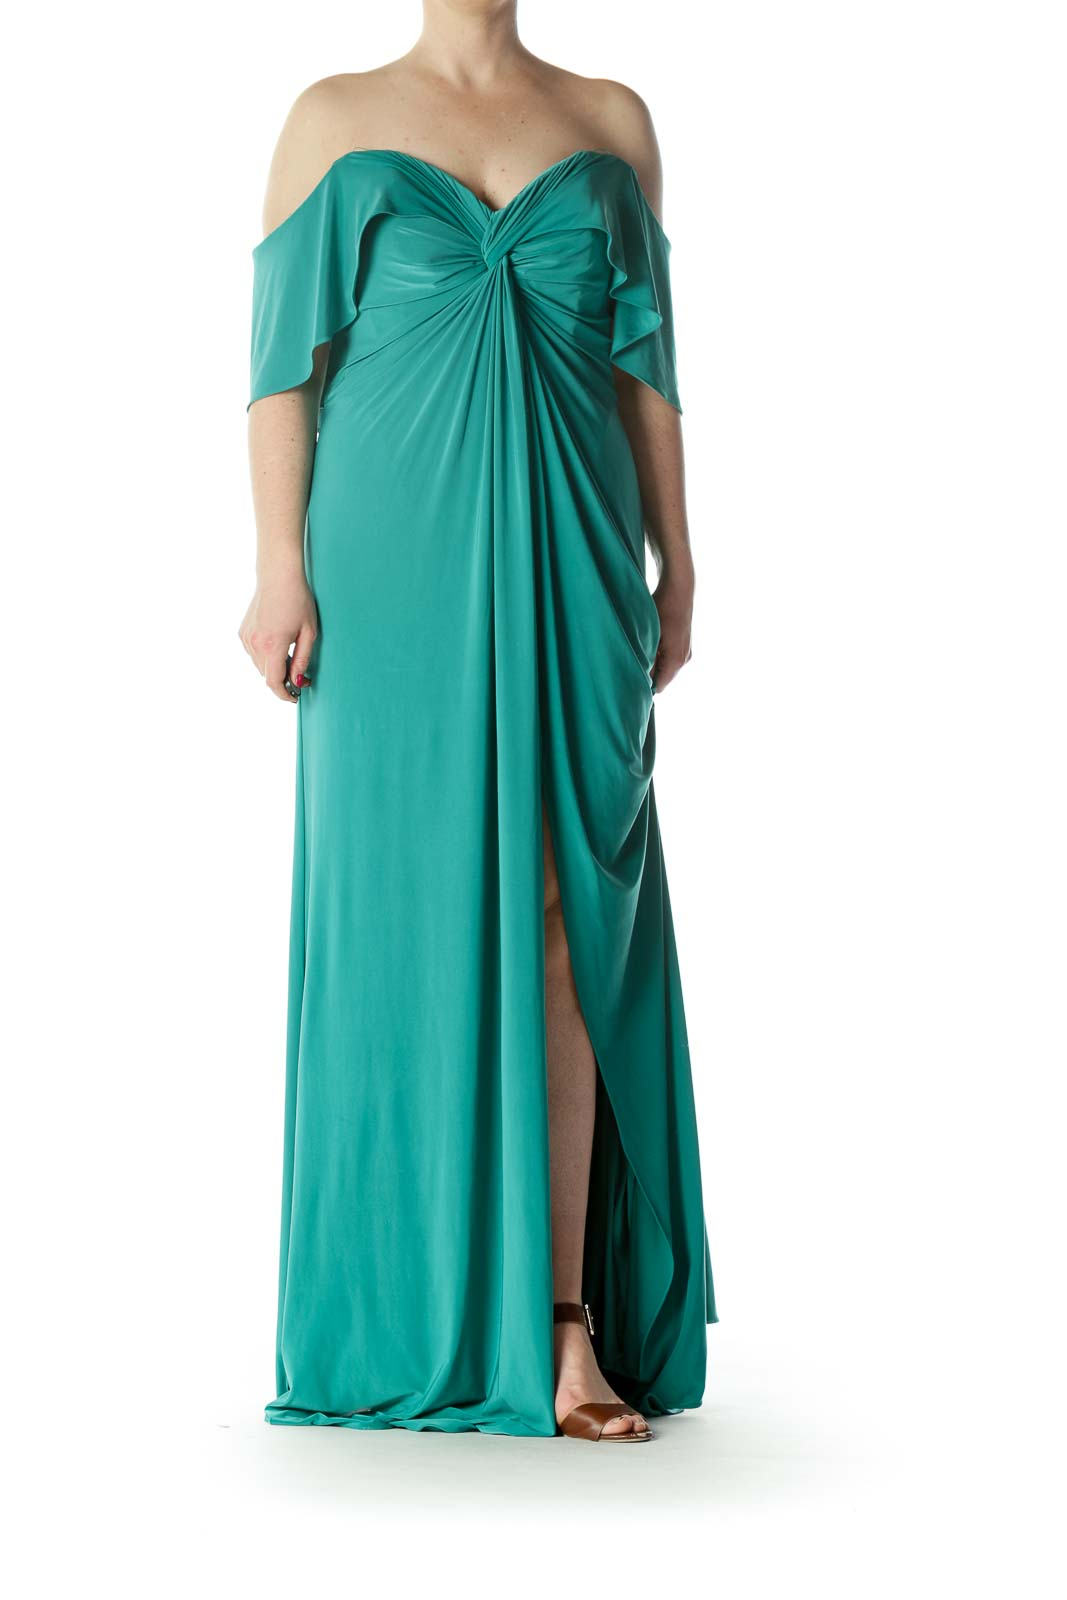 Emerald-Green Sweetheart-Neckline Knot-Detail Inside-Structure Evening Dress